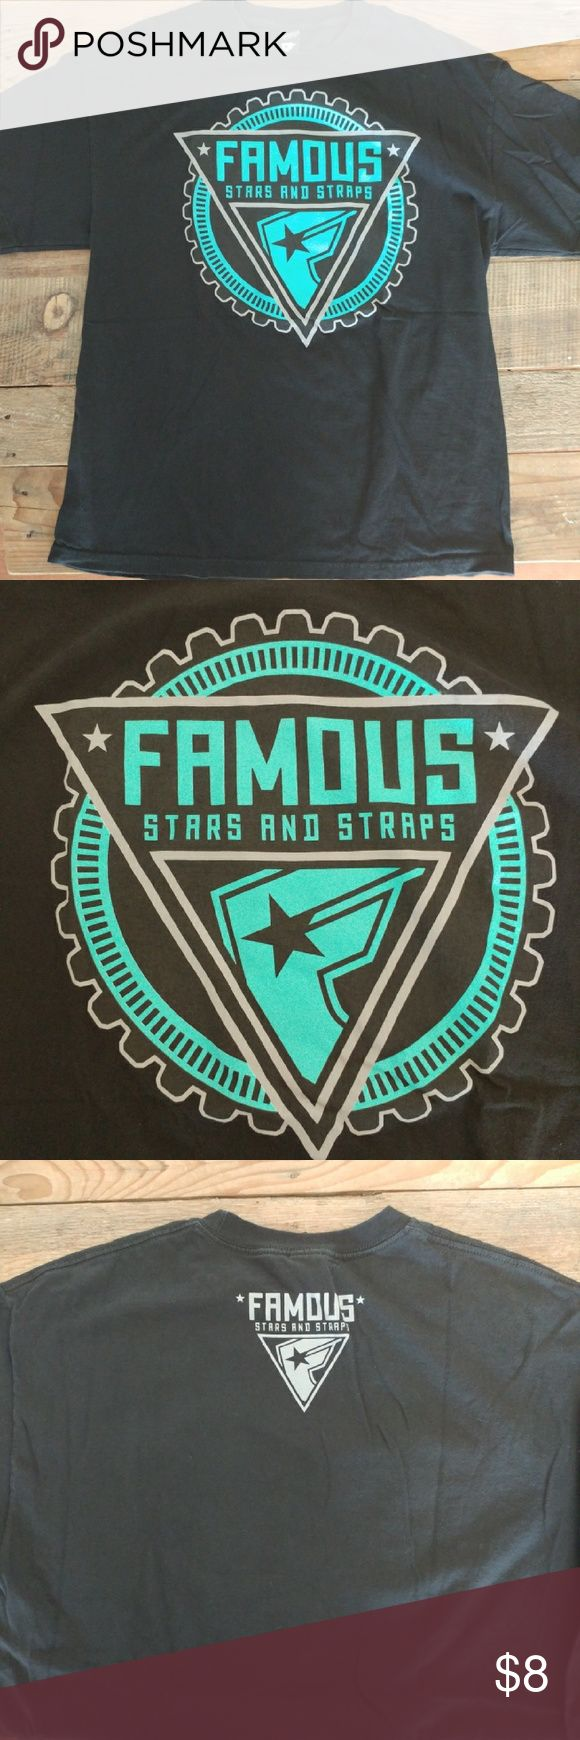 Famous Stars and Straps shirt size XL Men's shirt Famous Stars and Straps black size XL. No stains or holes. Famous Stars & Straps Shirts Tees - Short Sleeve